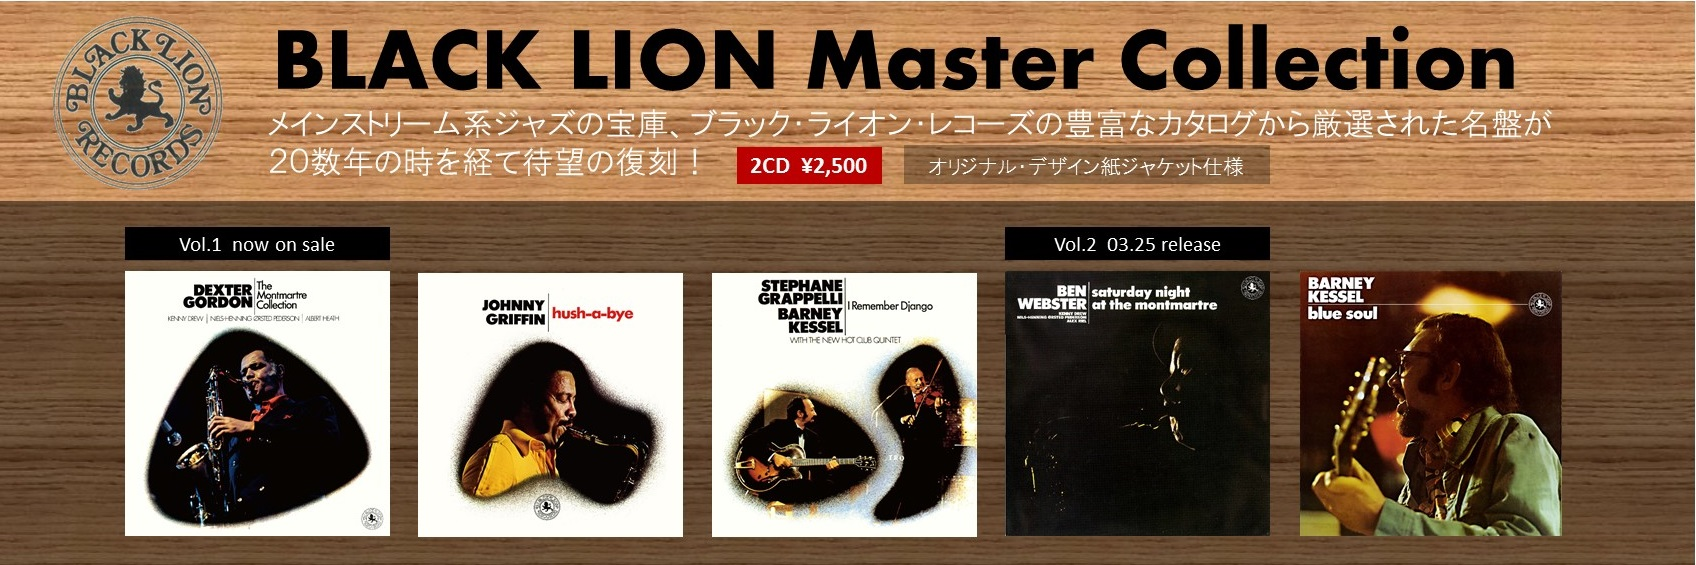 BLACK LION Master Collection